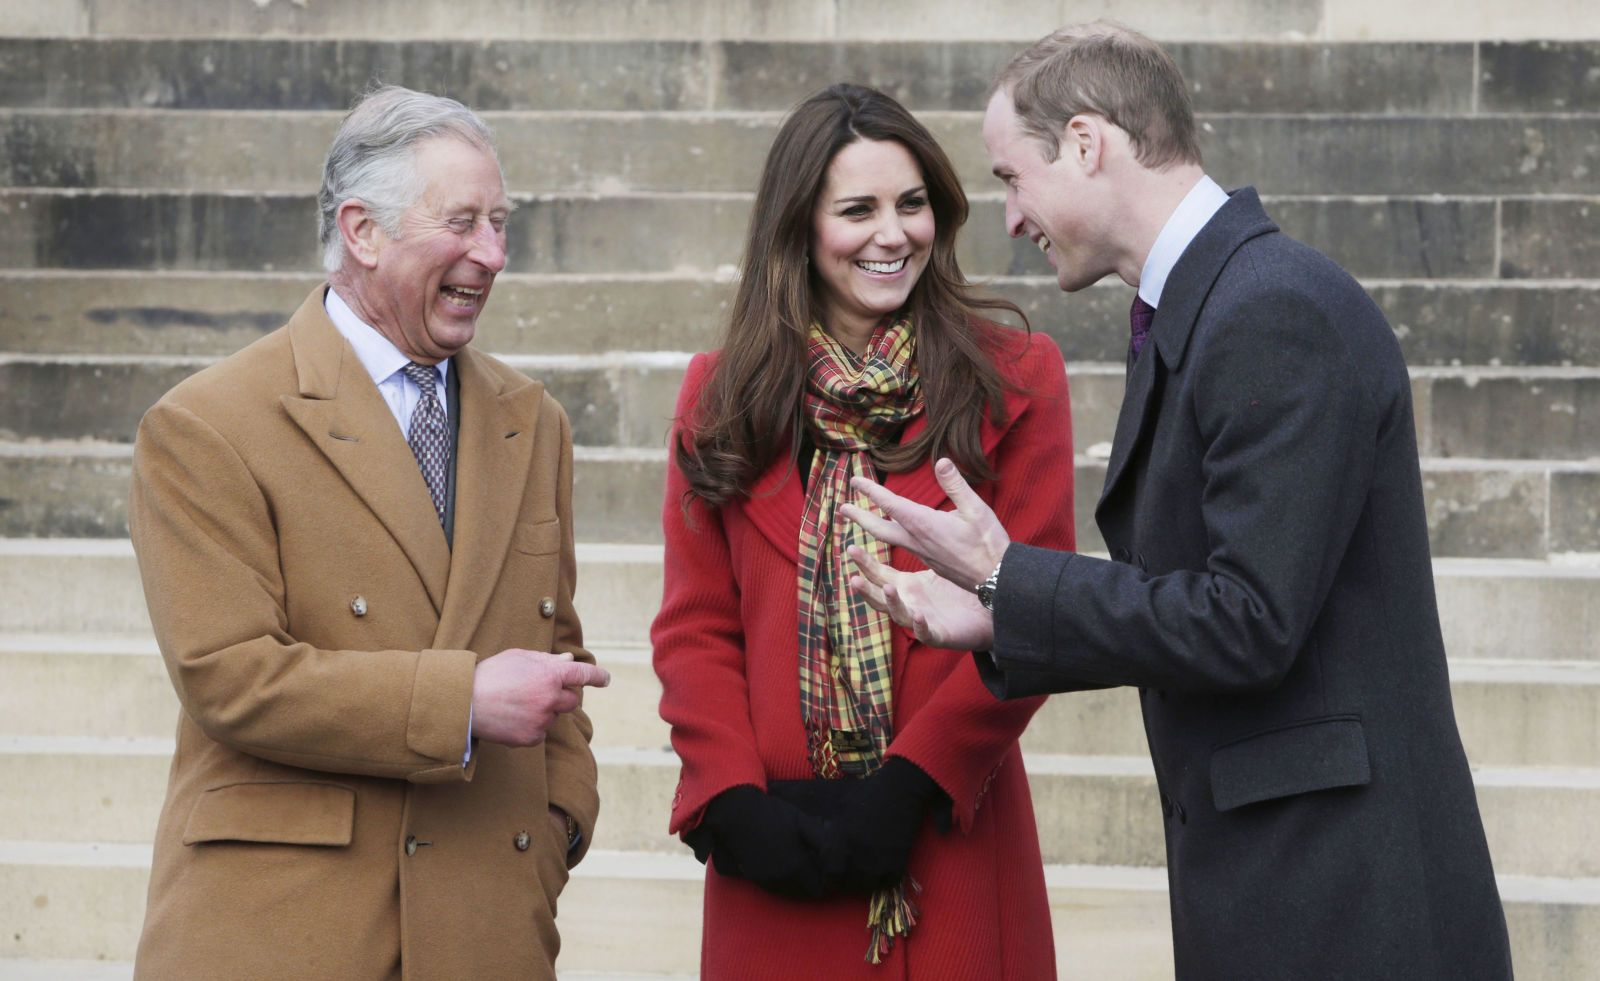 Kate Middleton And Prince William Apparently Really Annoyed Prince Charles When They Were Newlyweds